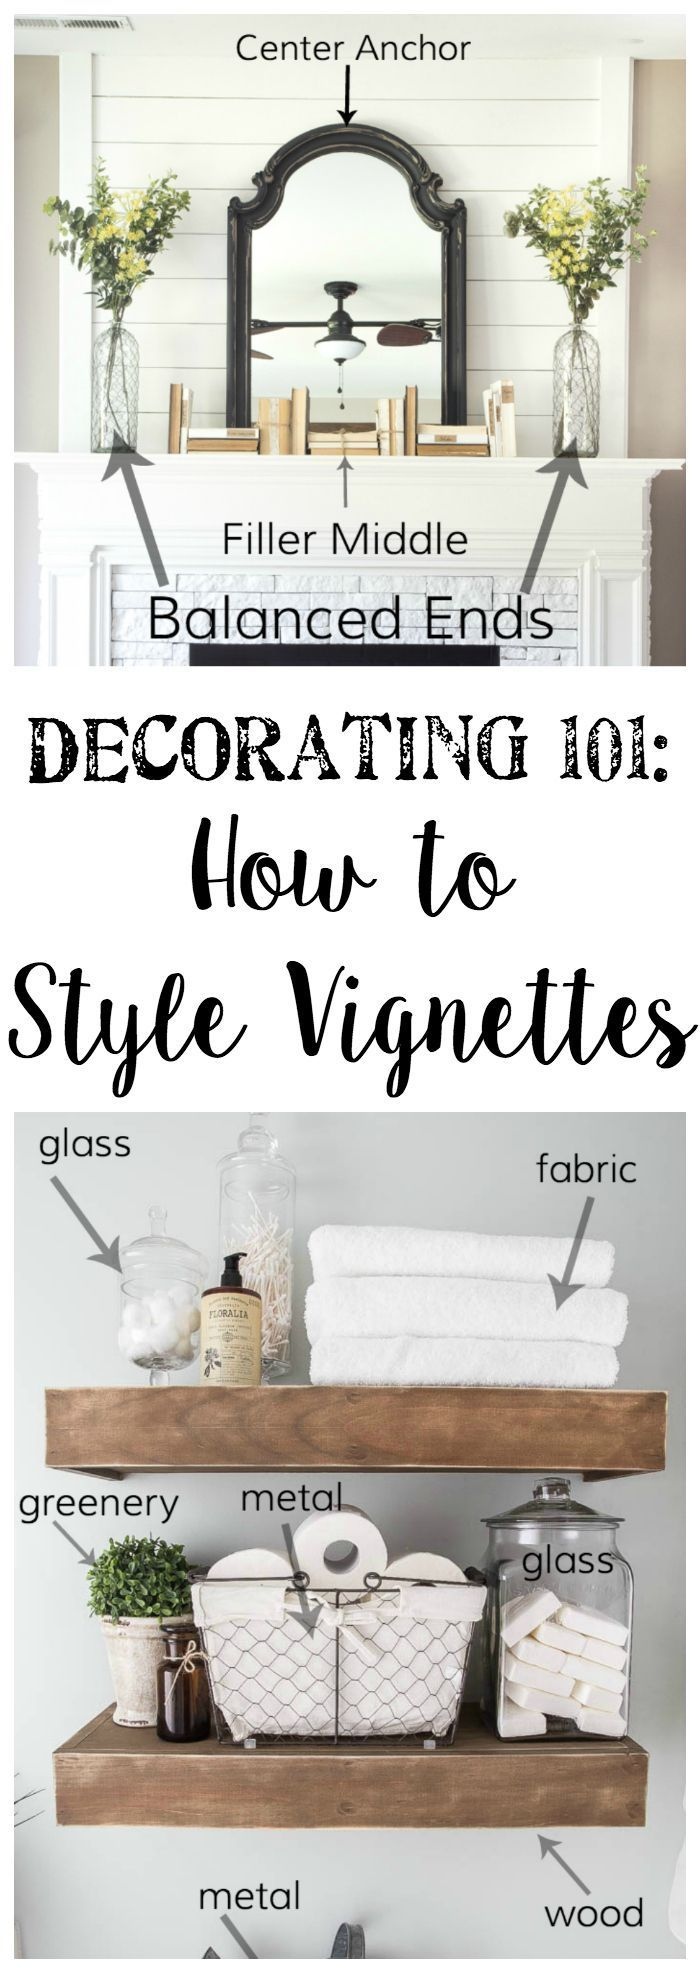 Decorating 101 - Vignette Styling